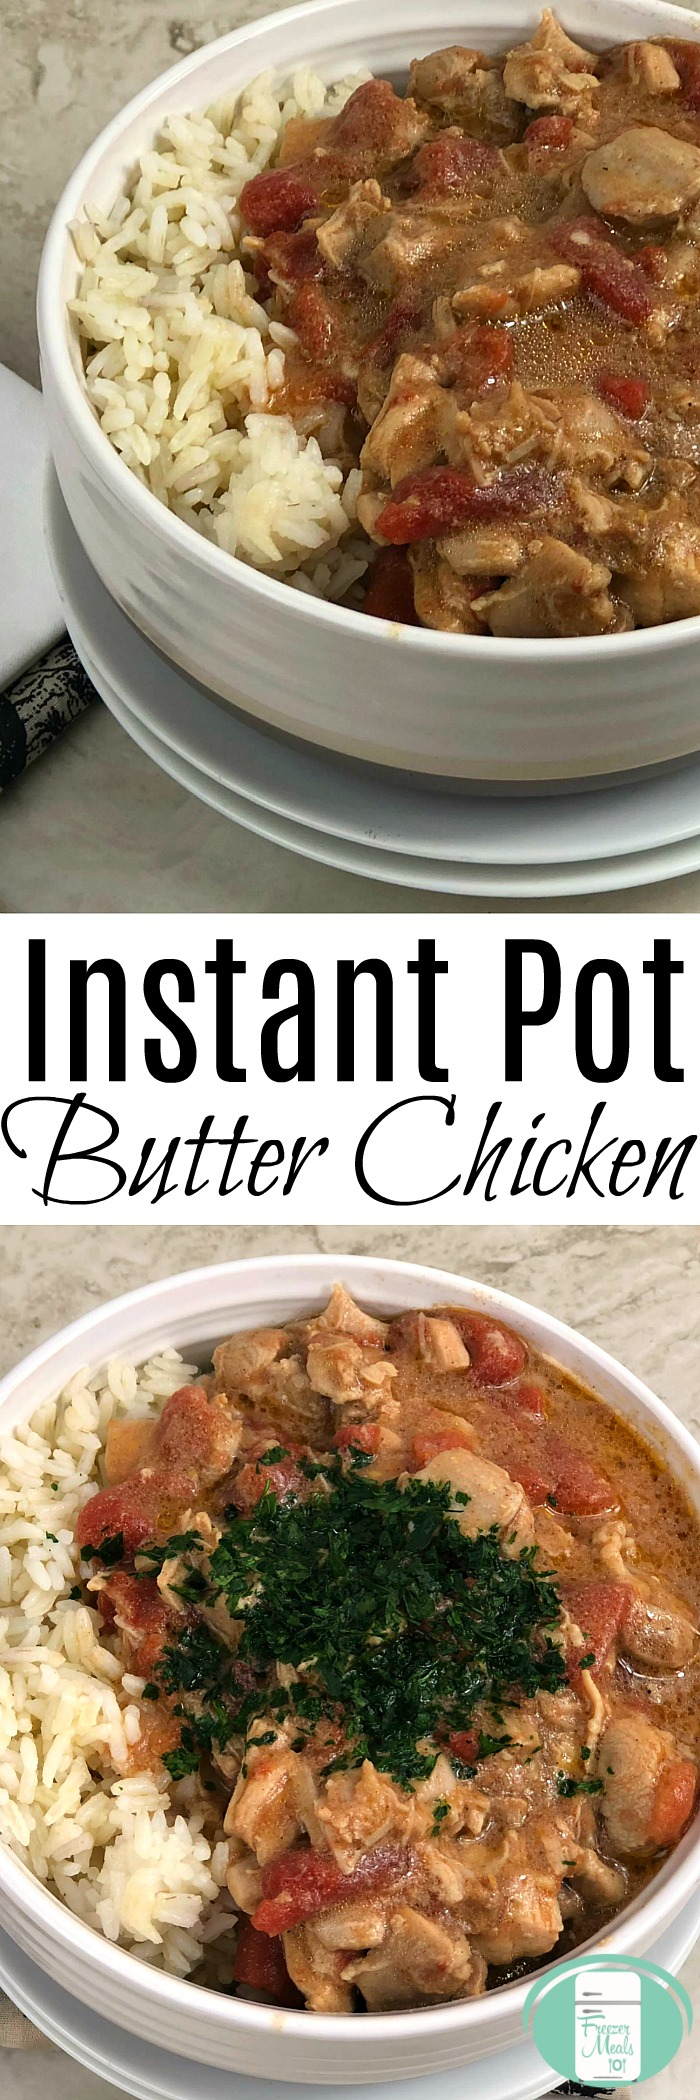 Instant Pot Butter Chicken Freezer Meal #freezermeals101 #freezermeals #freezercooking #instantpot